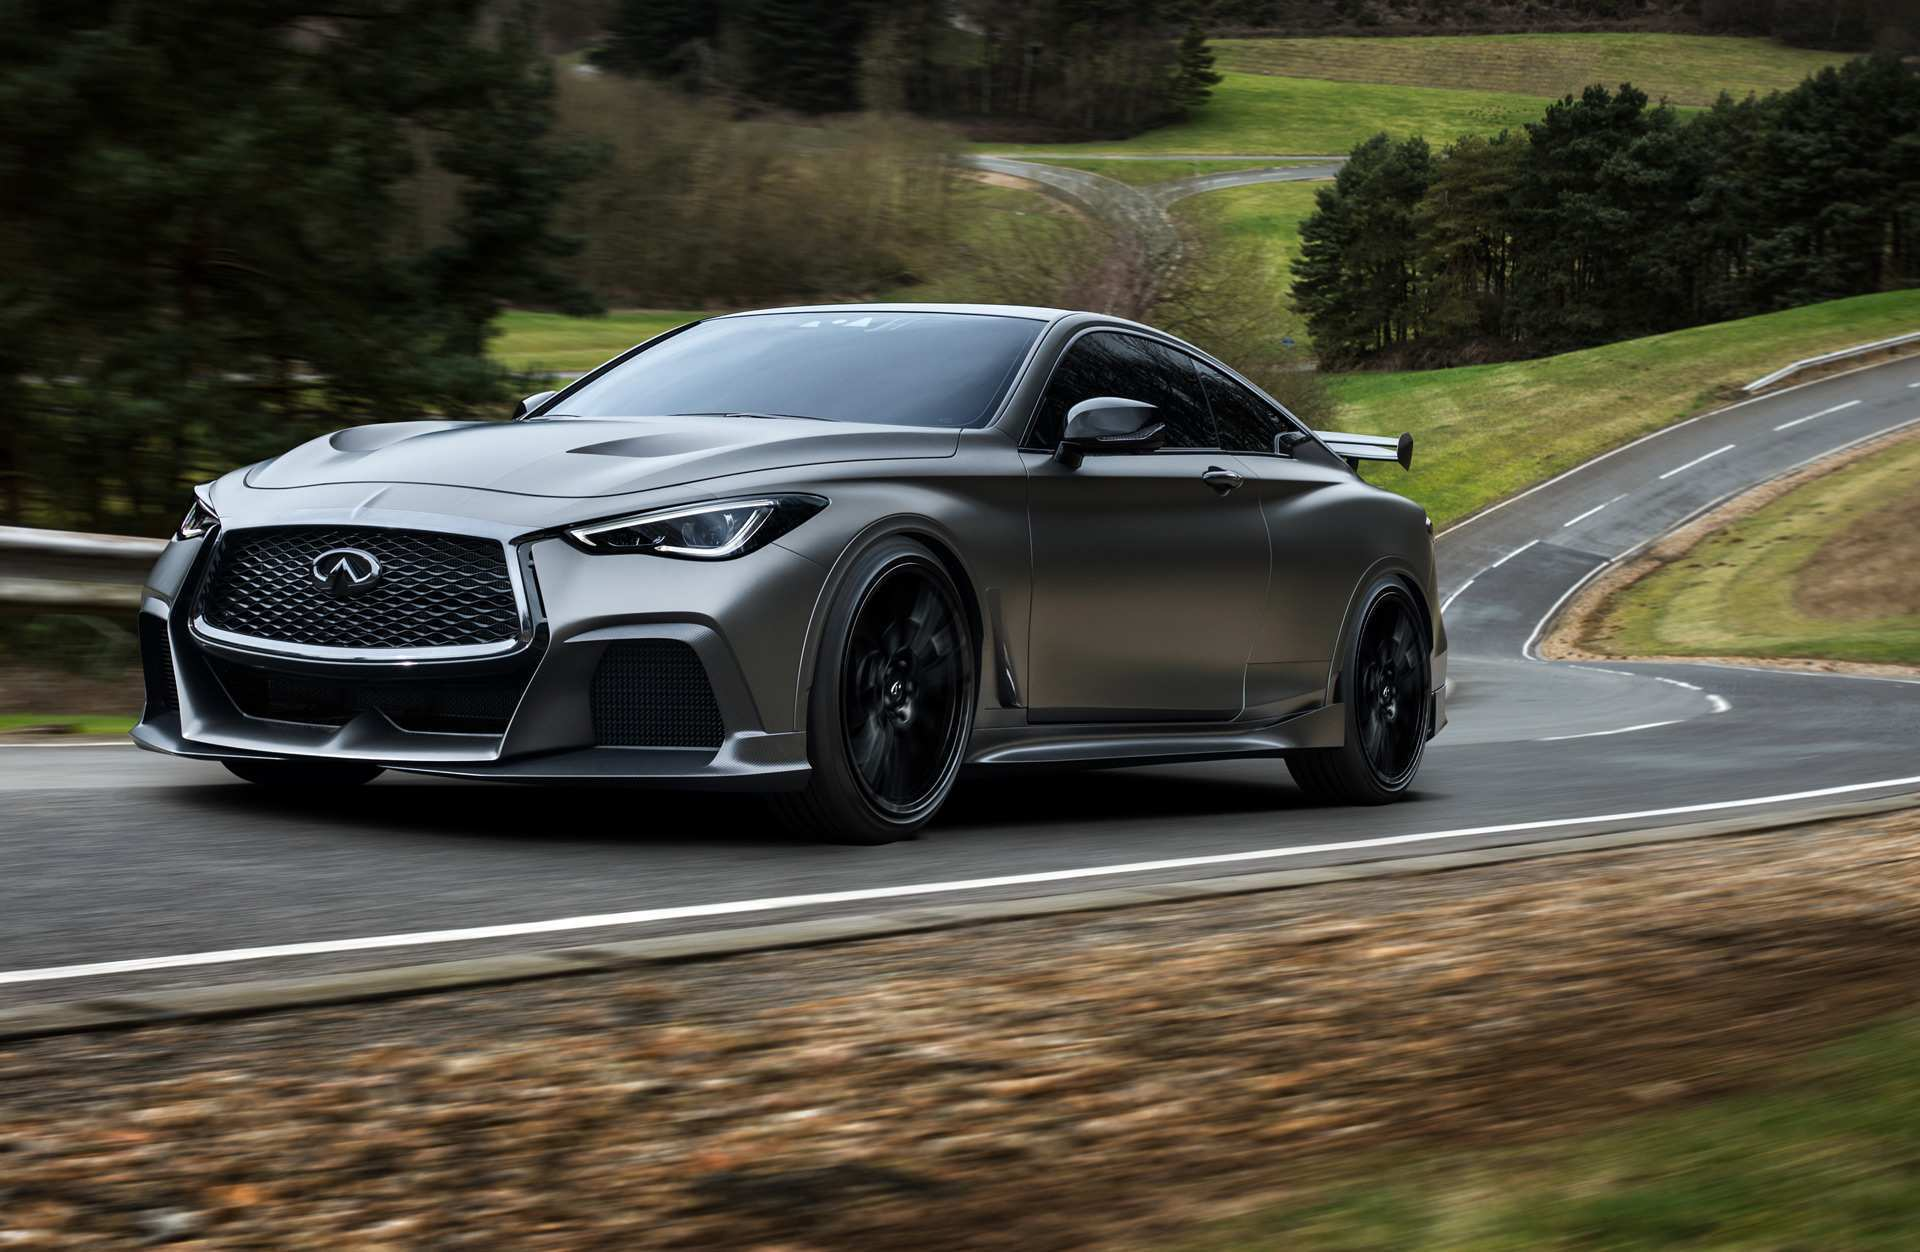 17 The 2019 Infiniti Q60 Research New